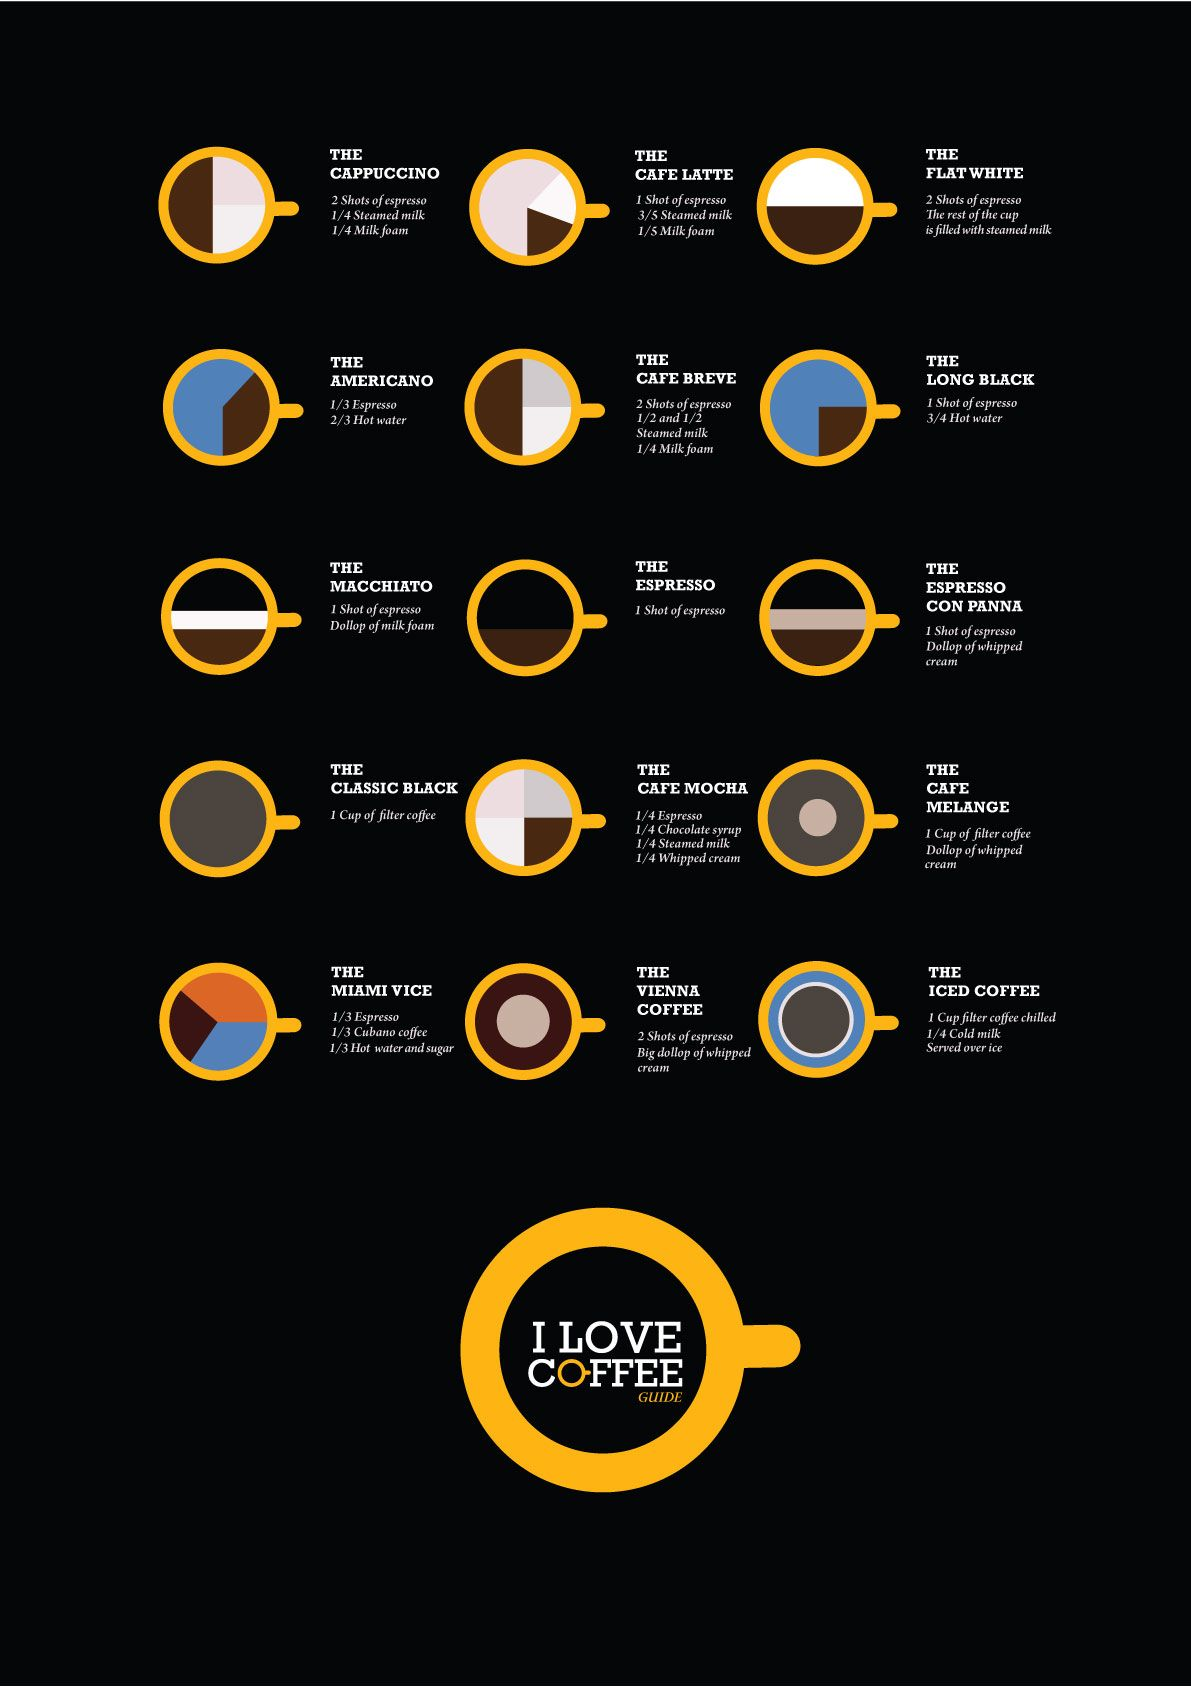 Google Image Result for http://ilovecoffee.co.za/wp-content/uploads/2010/09/Poster-I-love-Coffee-Guide1.jpg